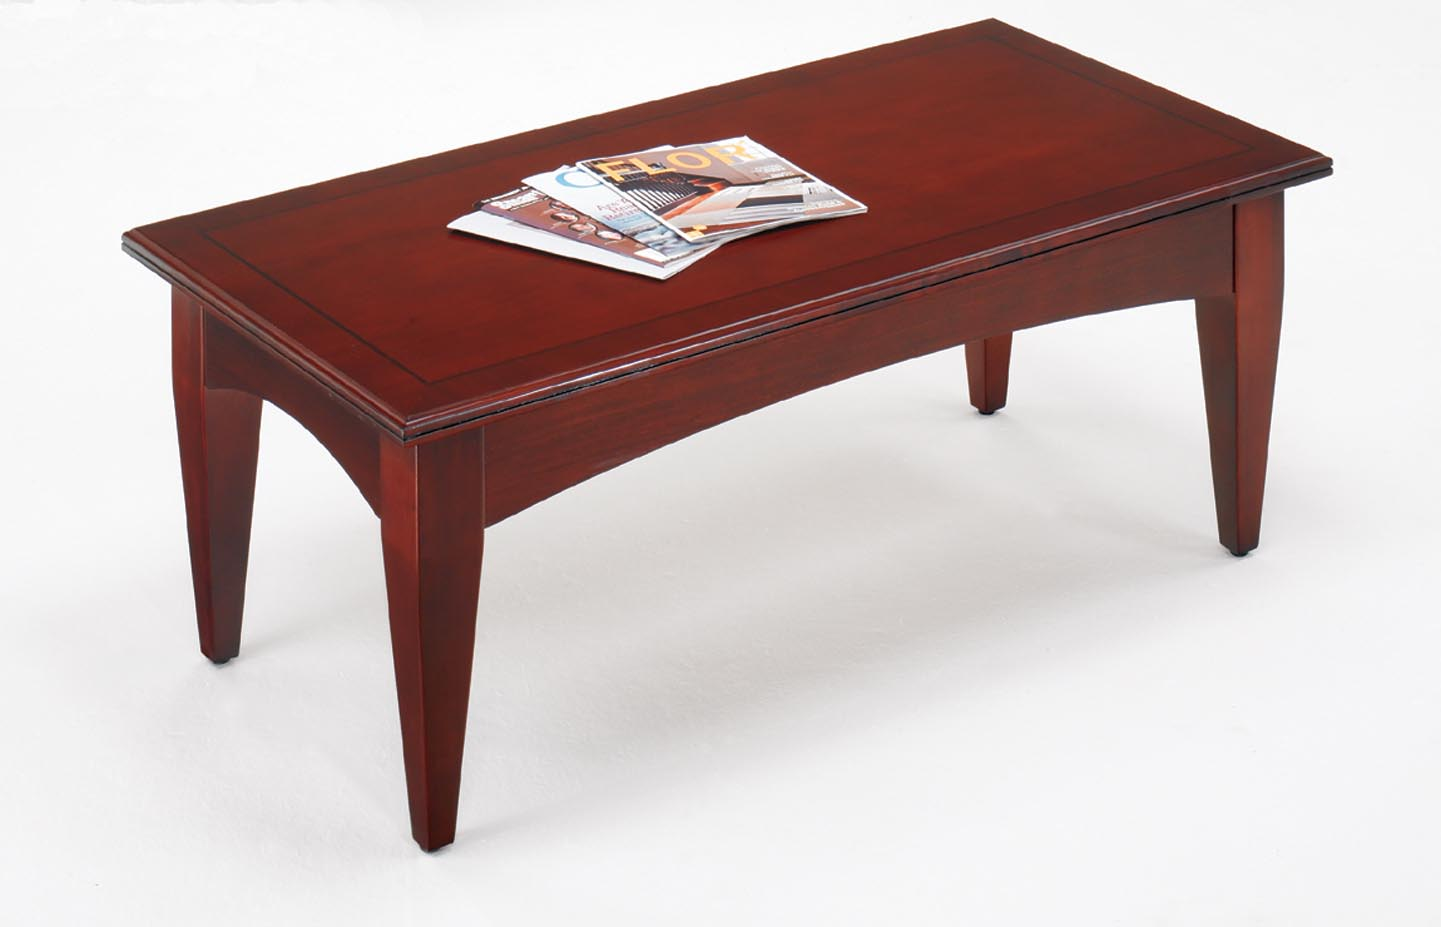 DMI Belmont Veneer Coffee Table